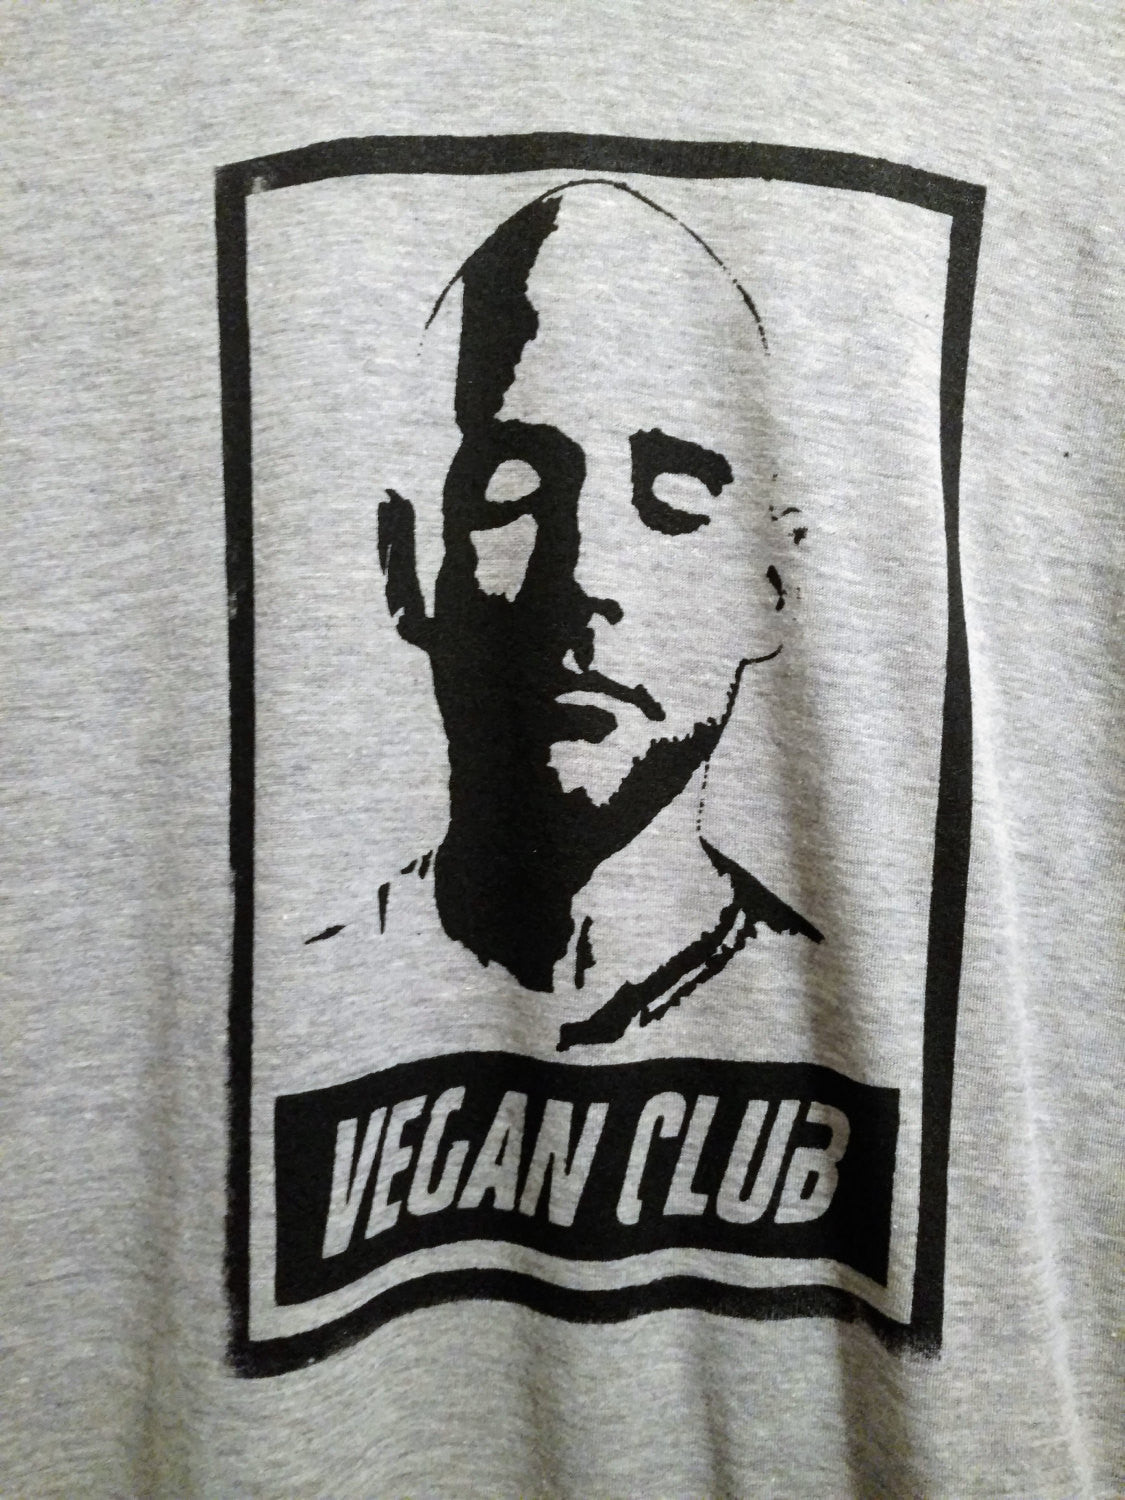 "Unisex T-shirt ""Vegan Club"" featuring Moby art by LeFou"